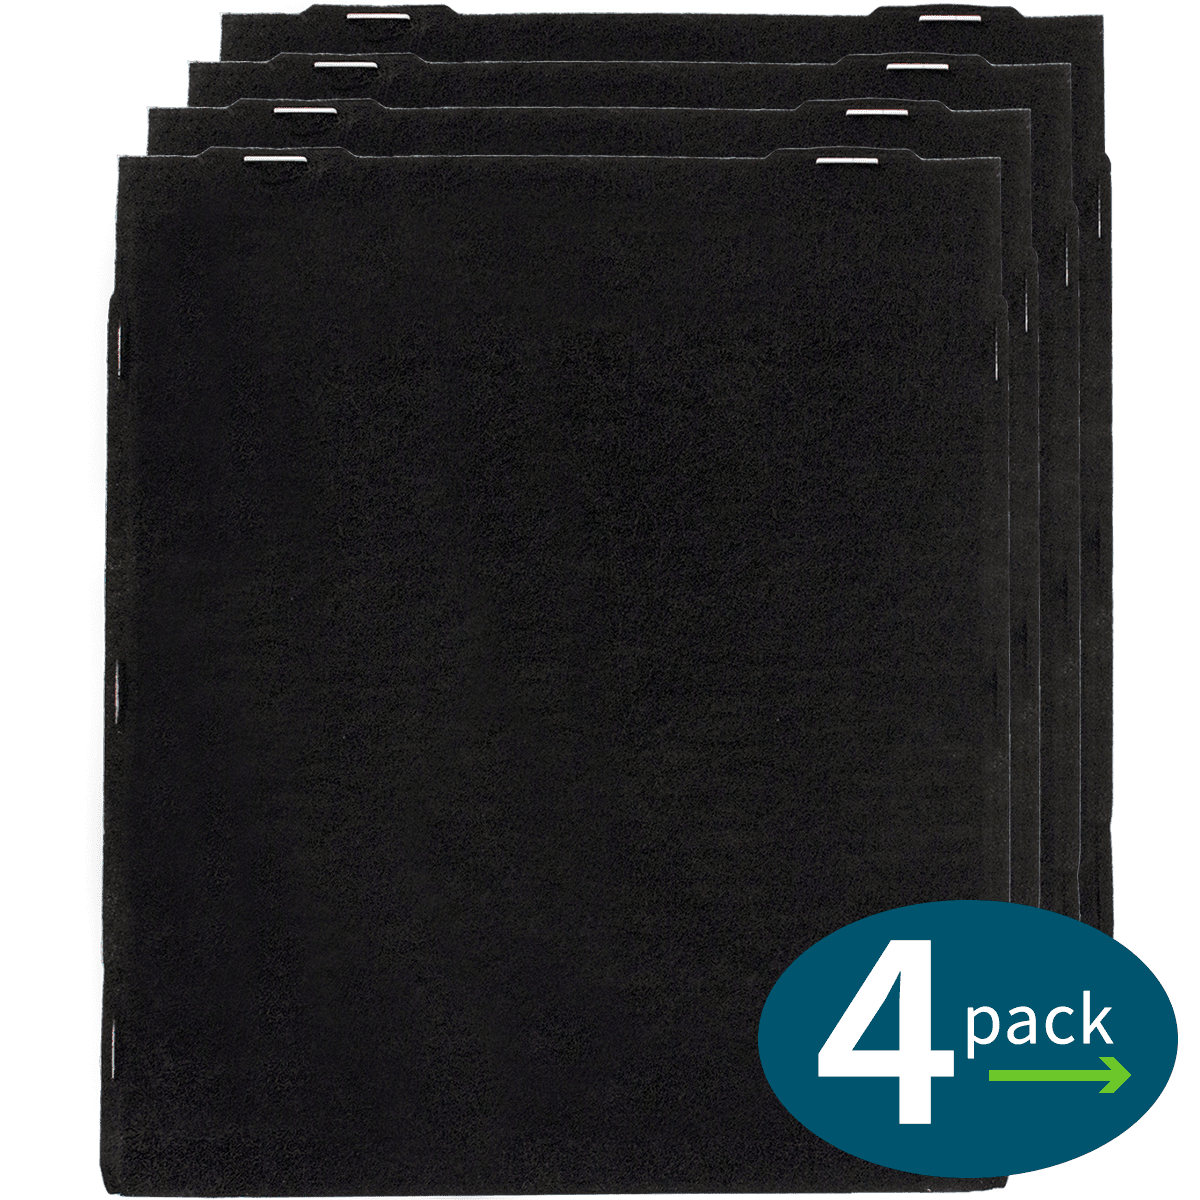 Filter-Monster Large Carbon Pre-filter for Whirlpool Air Purifiers (4 pack) wh6365